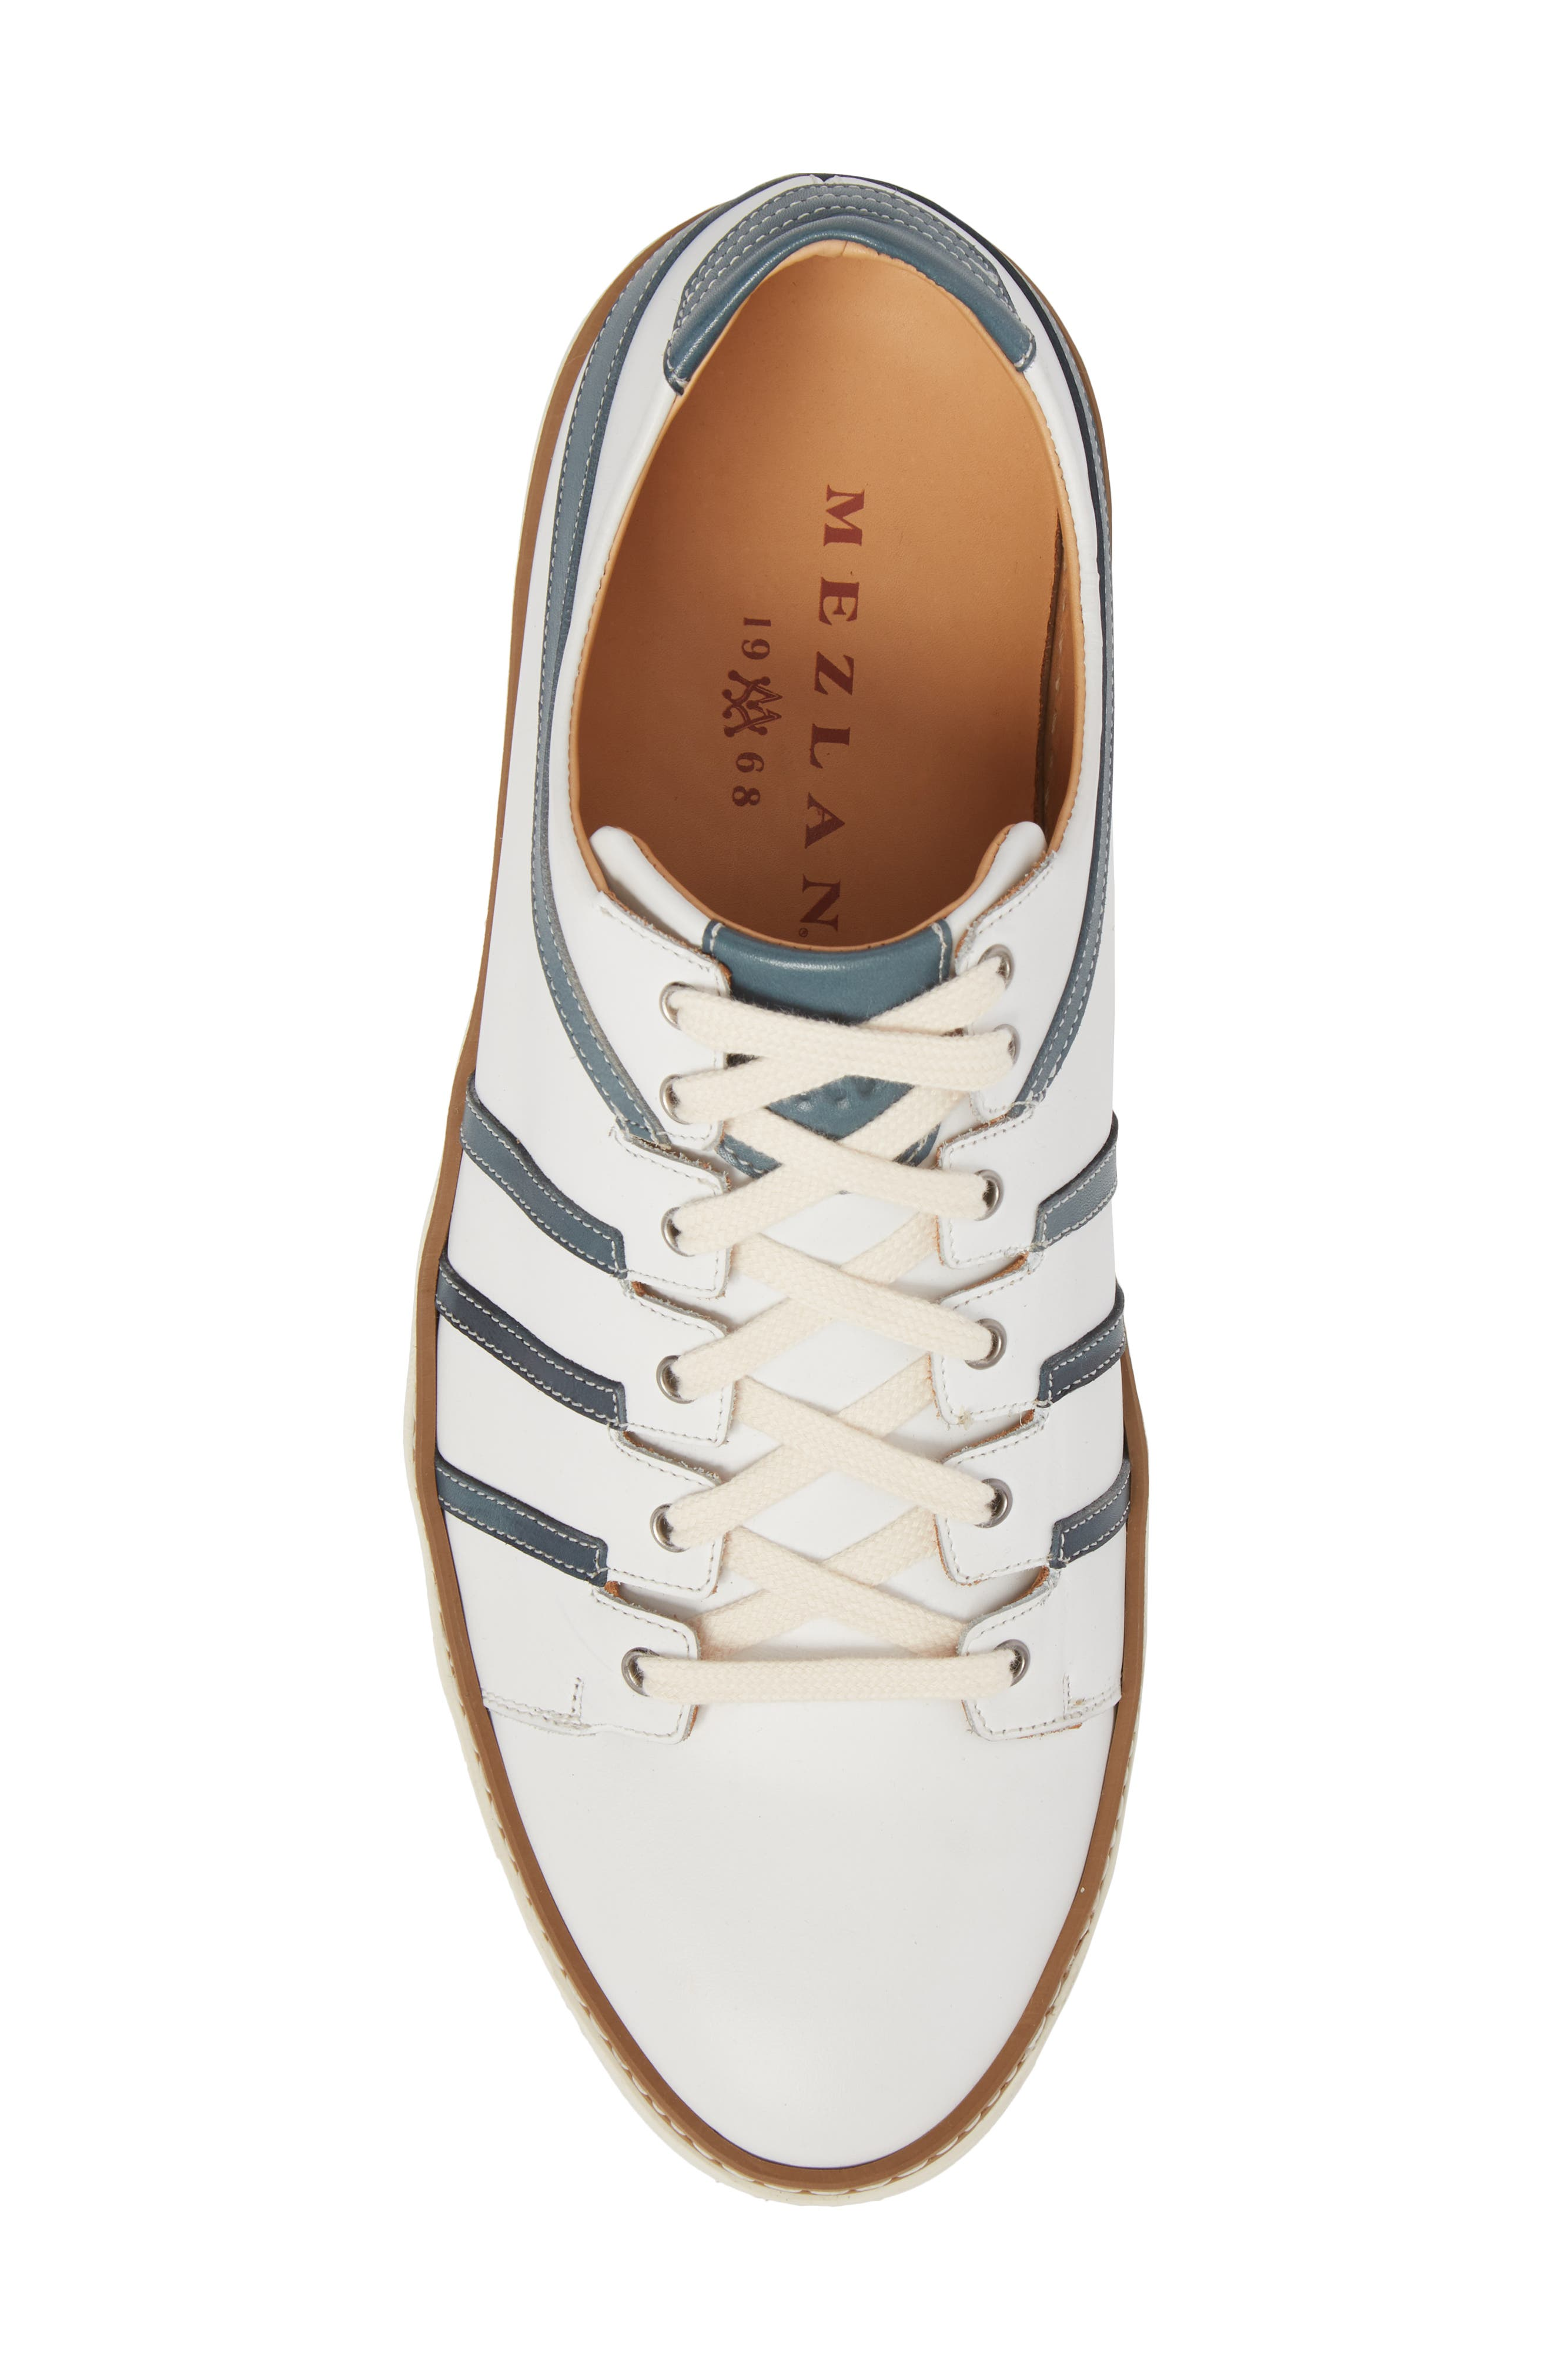 Tebas Striped Low Top Sneaker,                             Alternate thumbnail 5, color,                             White/ Jeans Leather